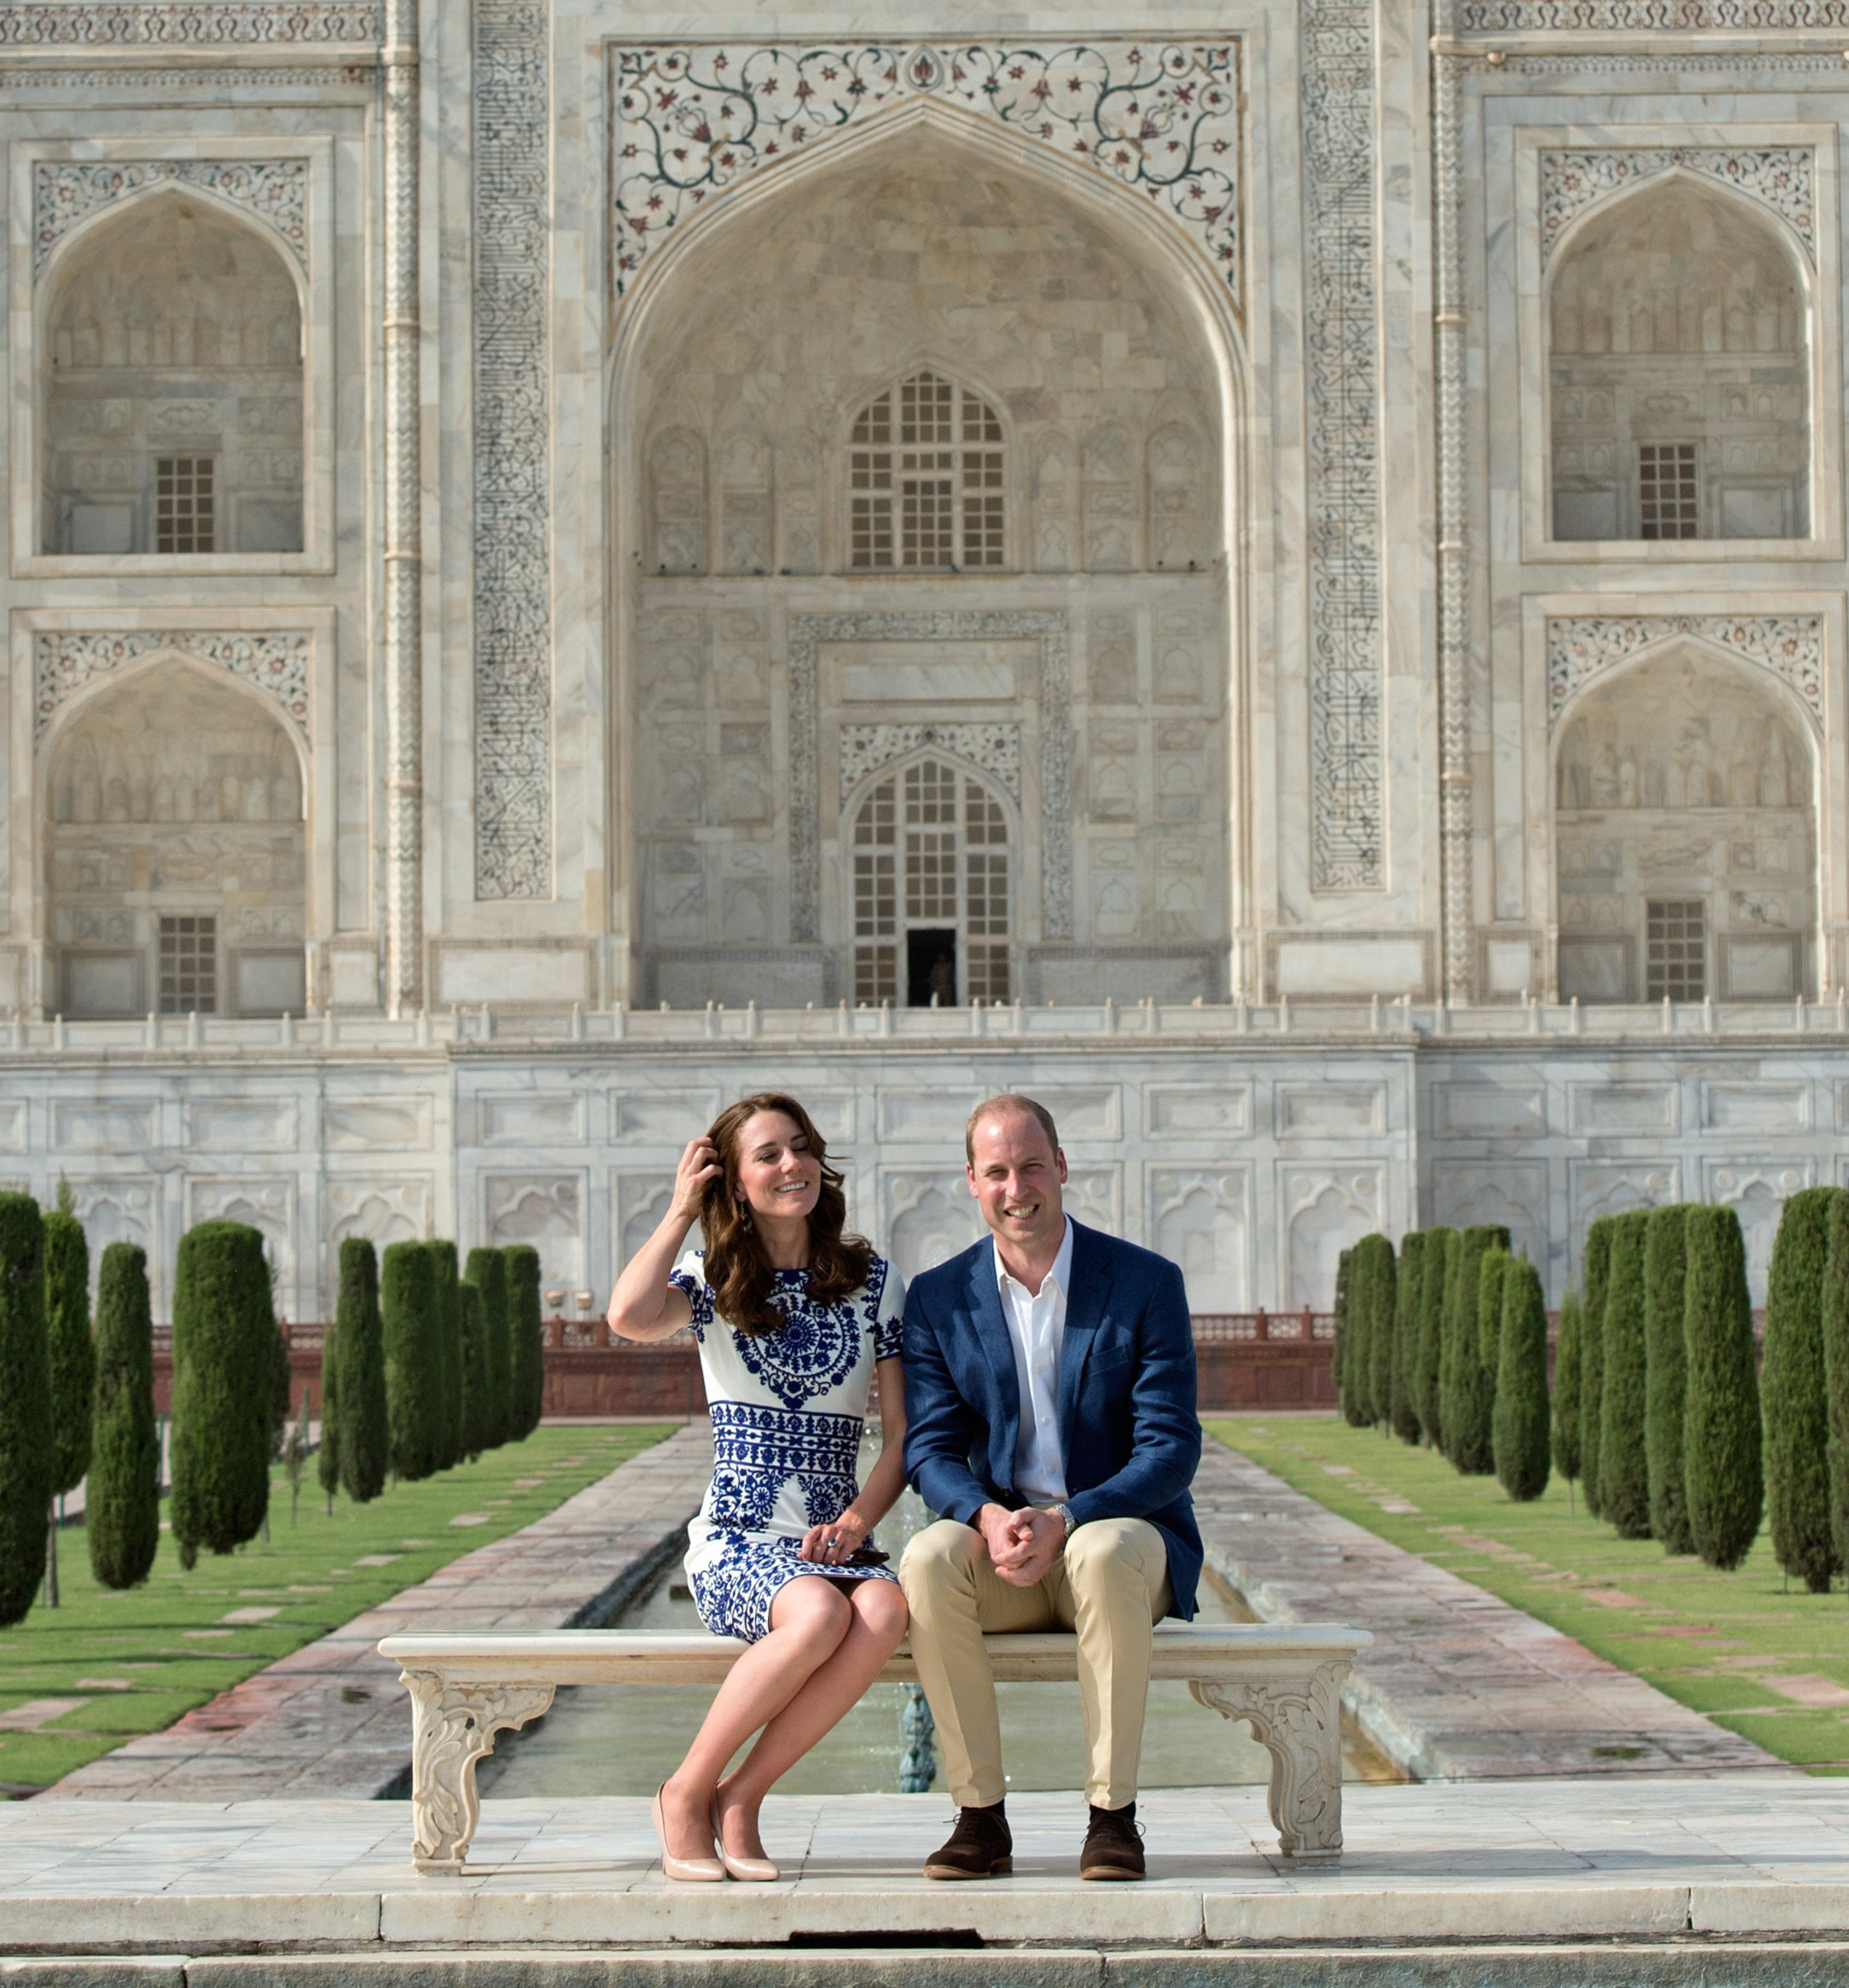 Prince William, Duke of Cambridge and Catherine, Duchess of Cambridge pose in front of the Taj Mahal on April 16, 2016 | Photo: Getty Images